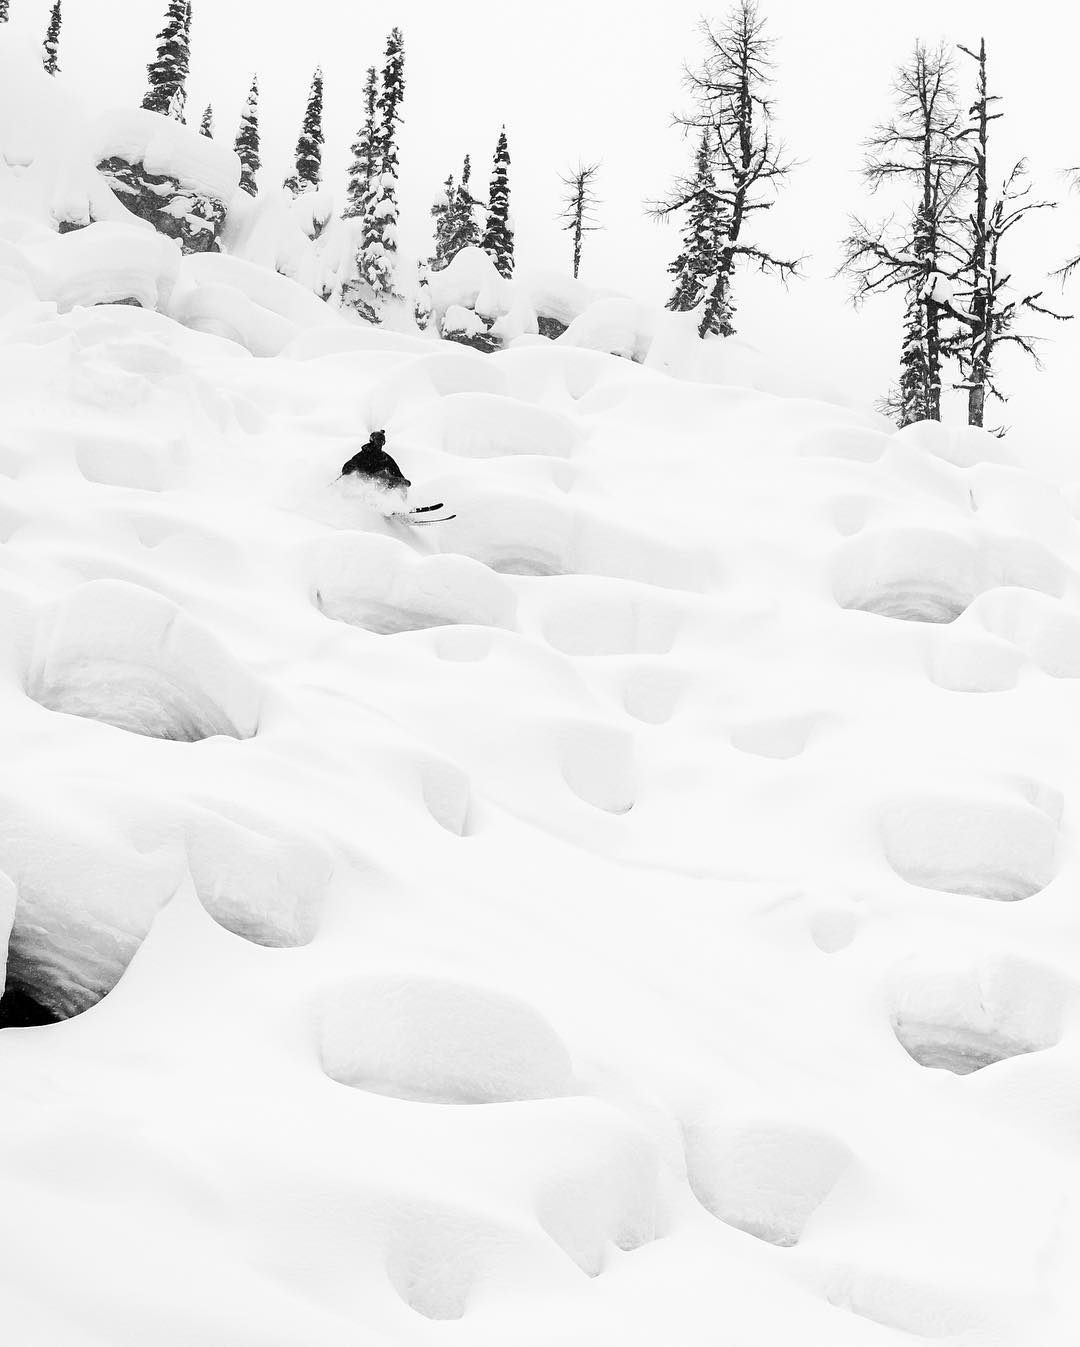 Pillows for days.  Skier: @johnwellsski PC: Seth Holton  #embracethestorm | #flylowgear